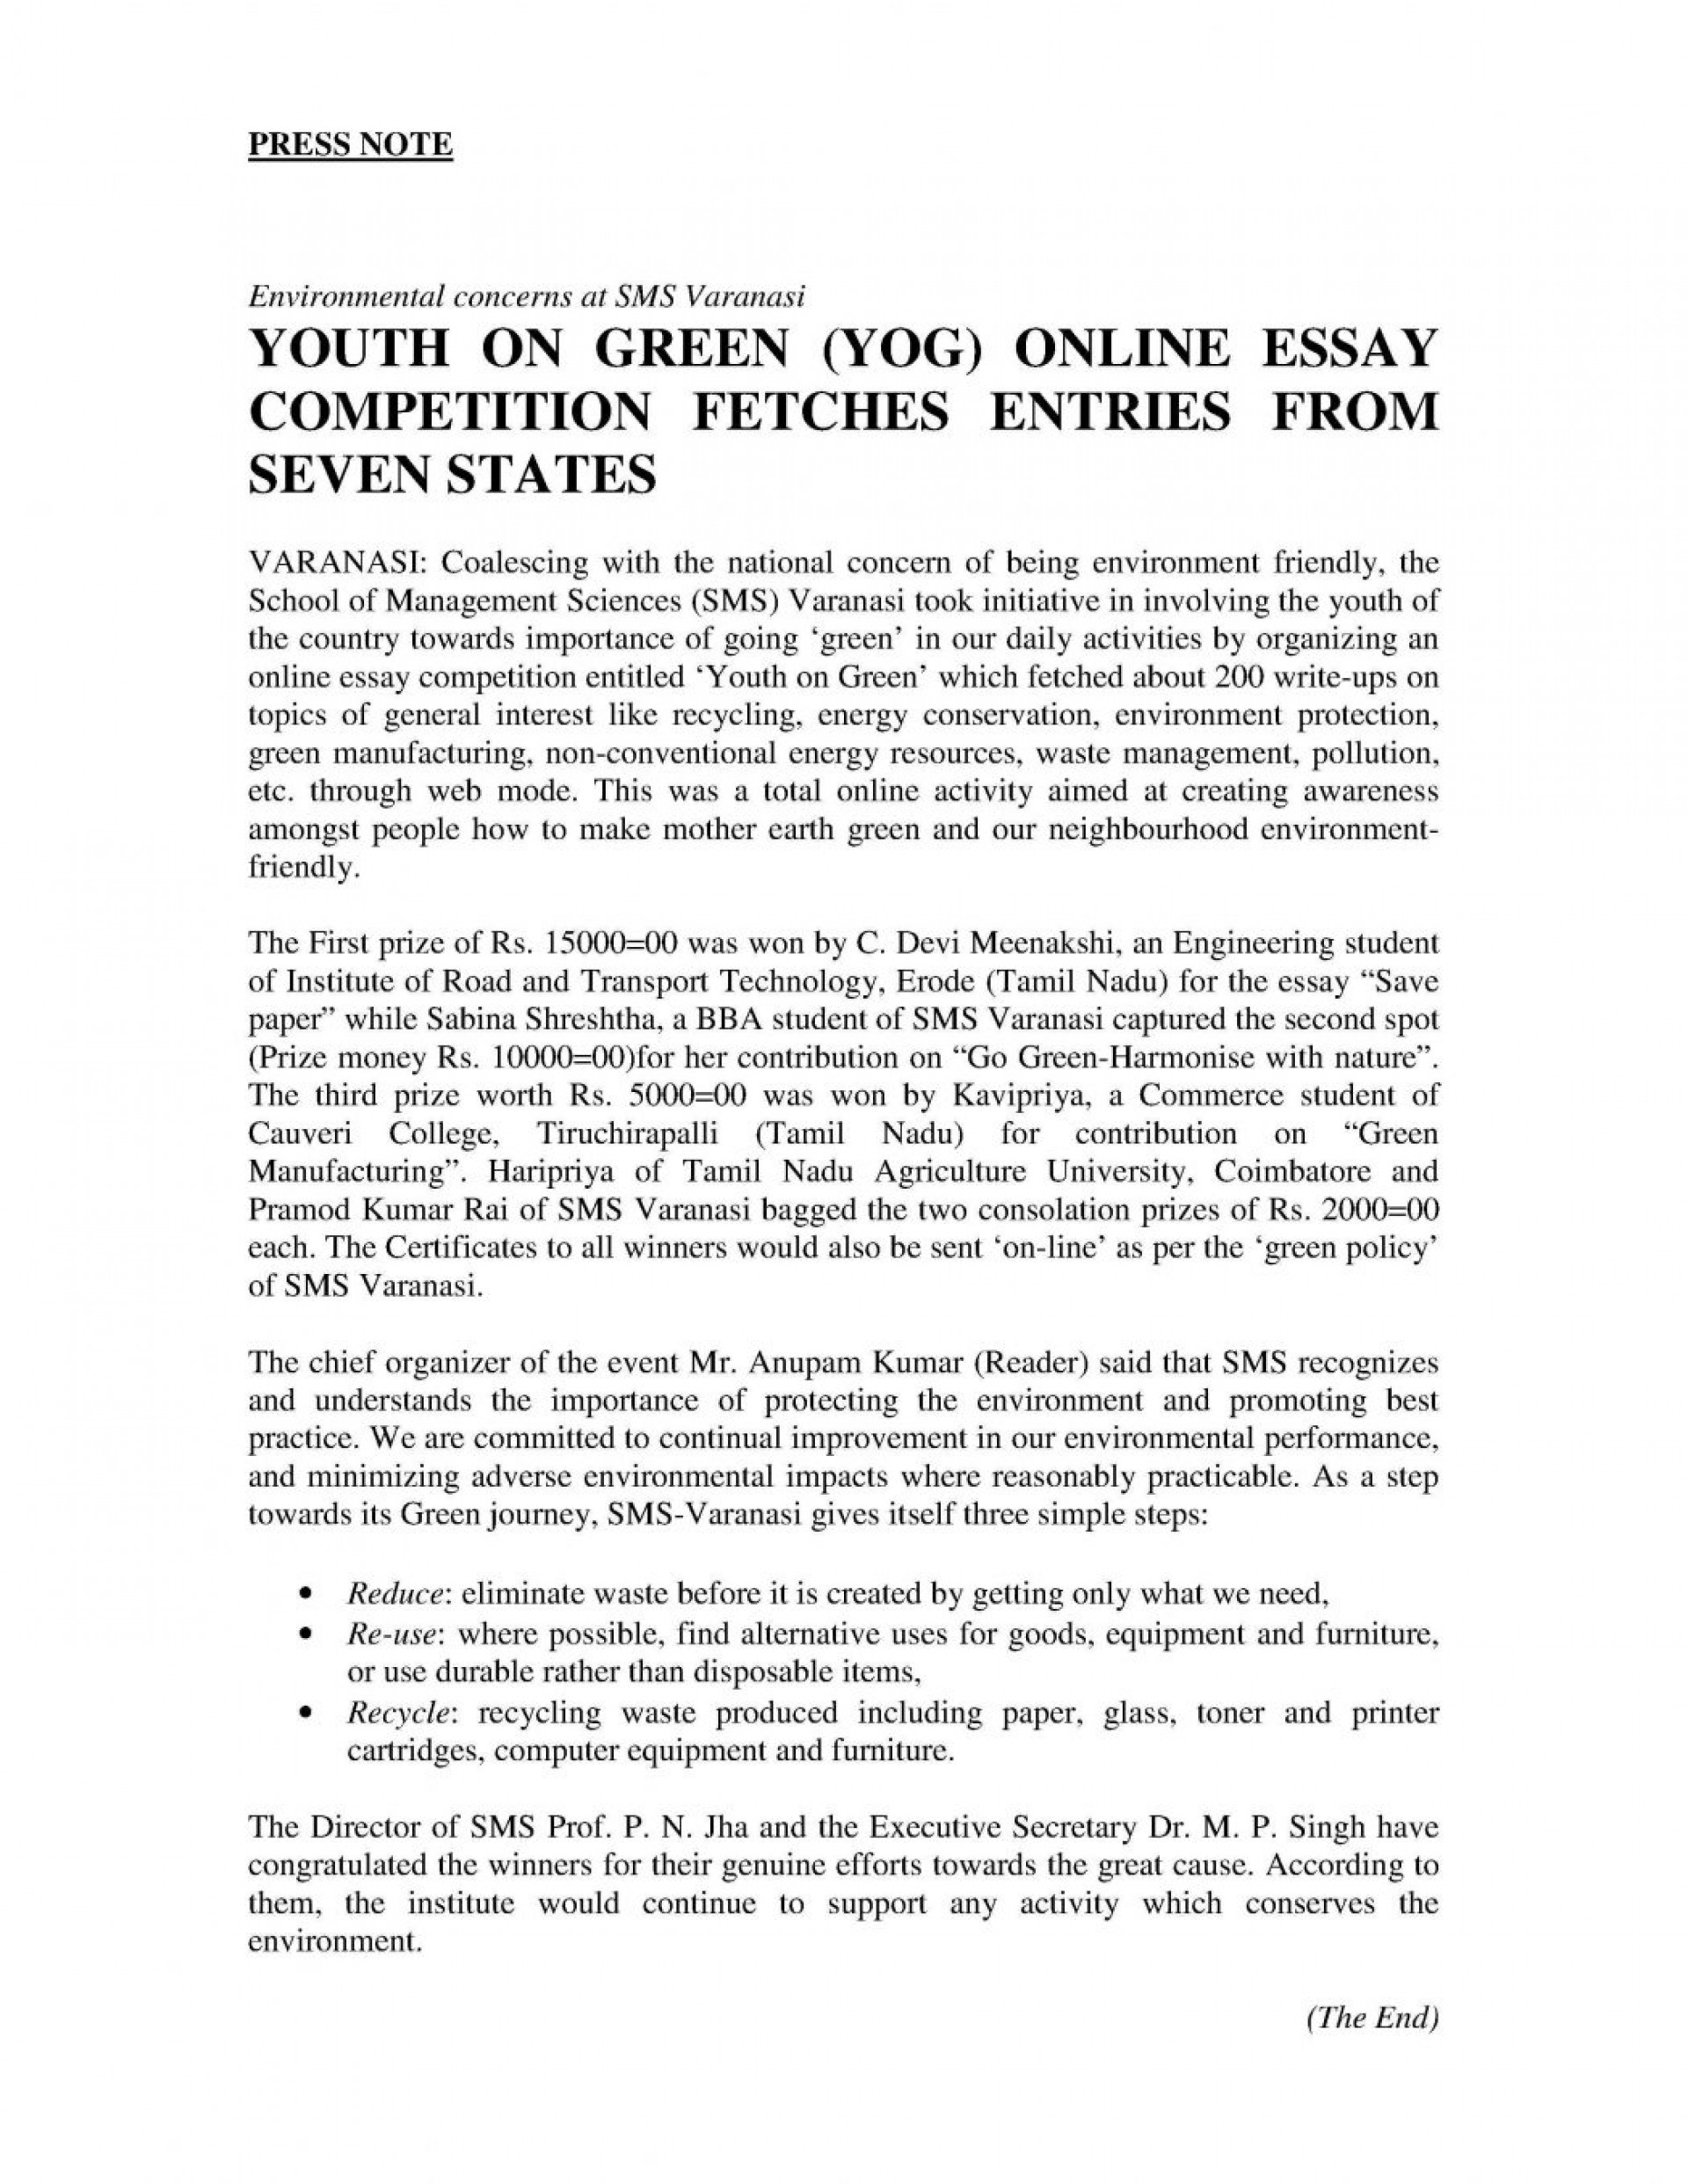 006 Amusing Ourselves To Death Essay Good Habits Online Essays Yog Press Re Ftce Examples Gkt 1048x1356 Example Unbelievable Sample English 6-12 Samples Practice 1920